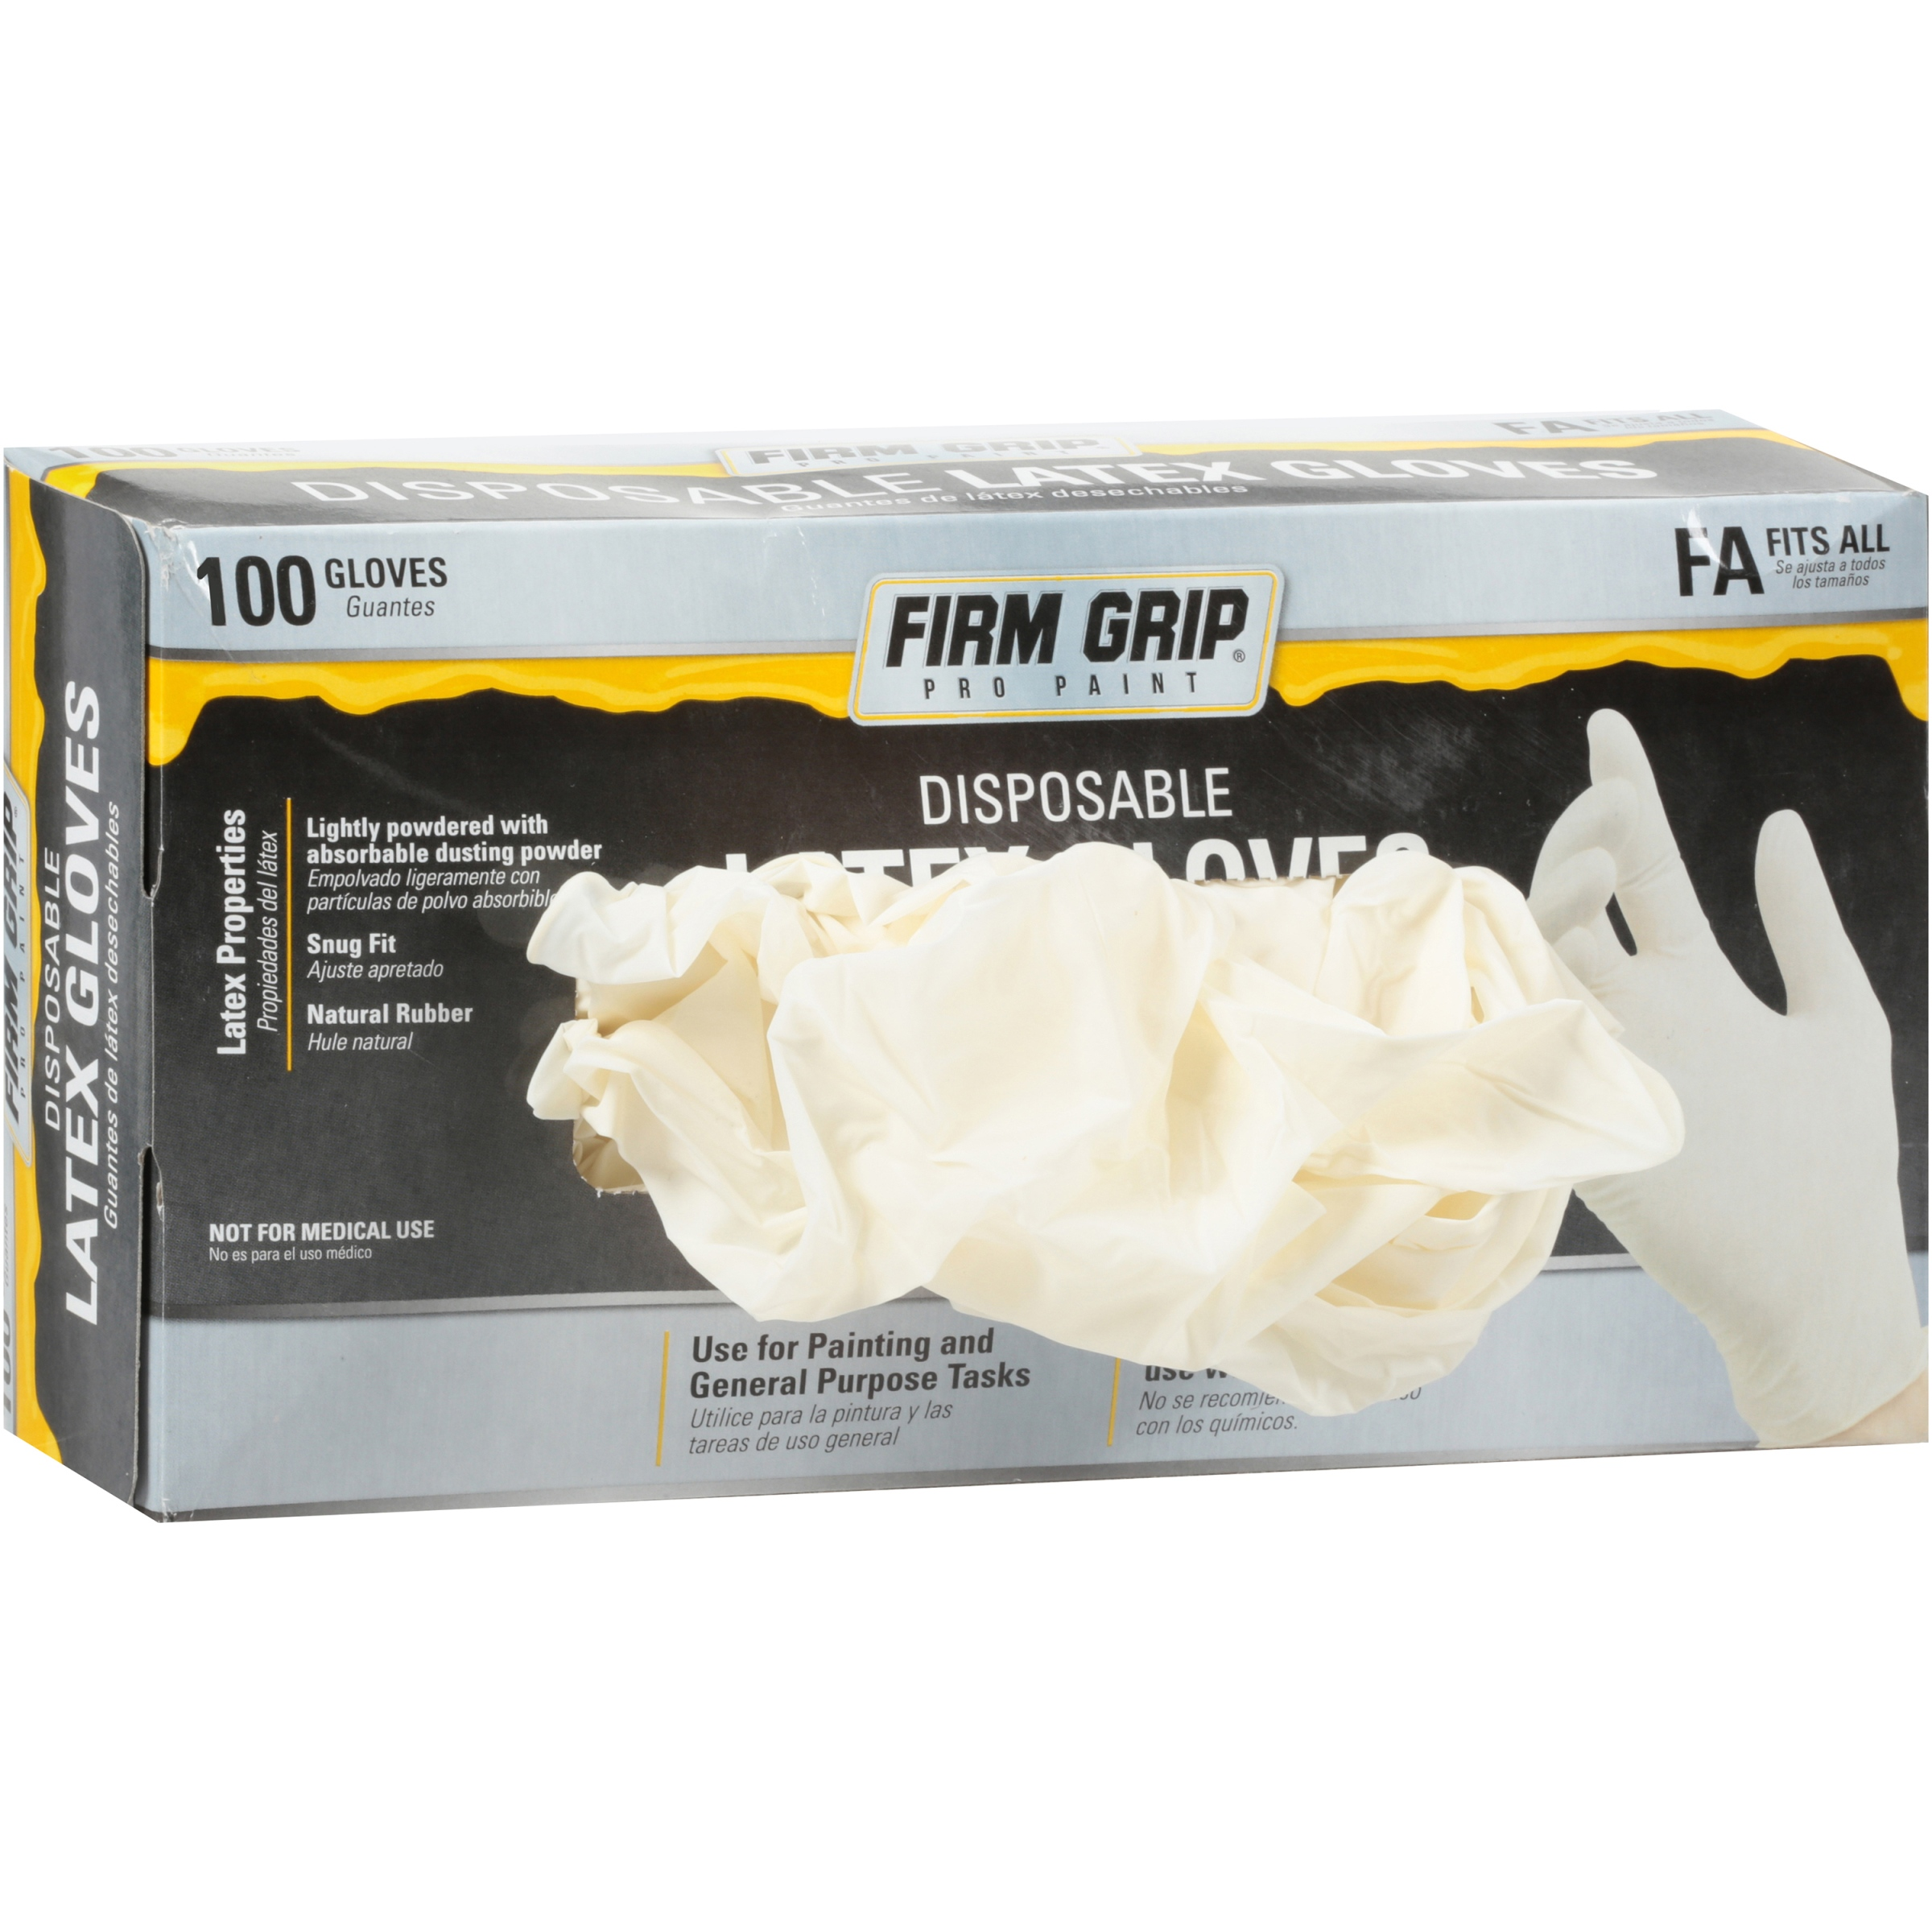 Firm Grip Pro Paint Fits All Disposable Latex Gloves 100 ct Box by Big Time Products, LLC